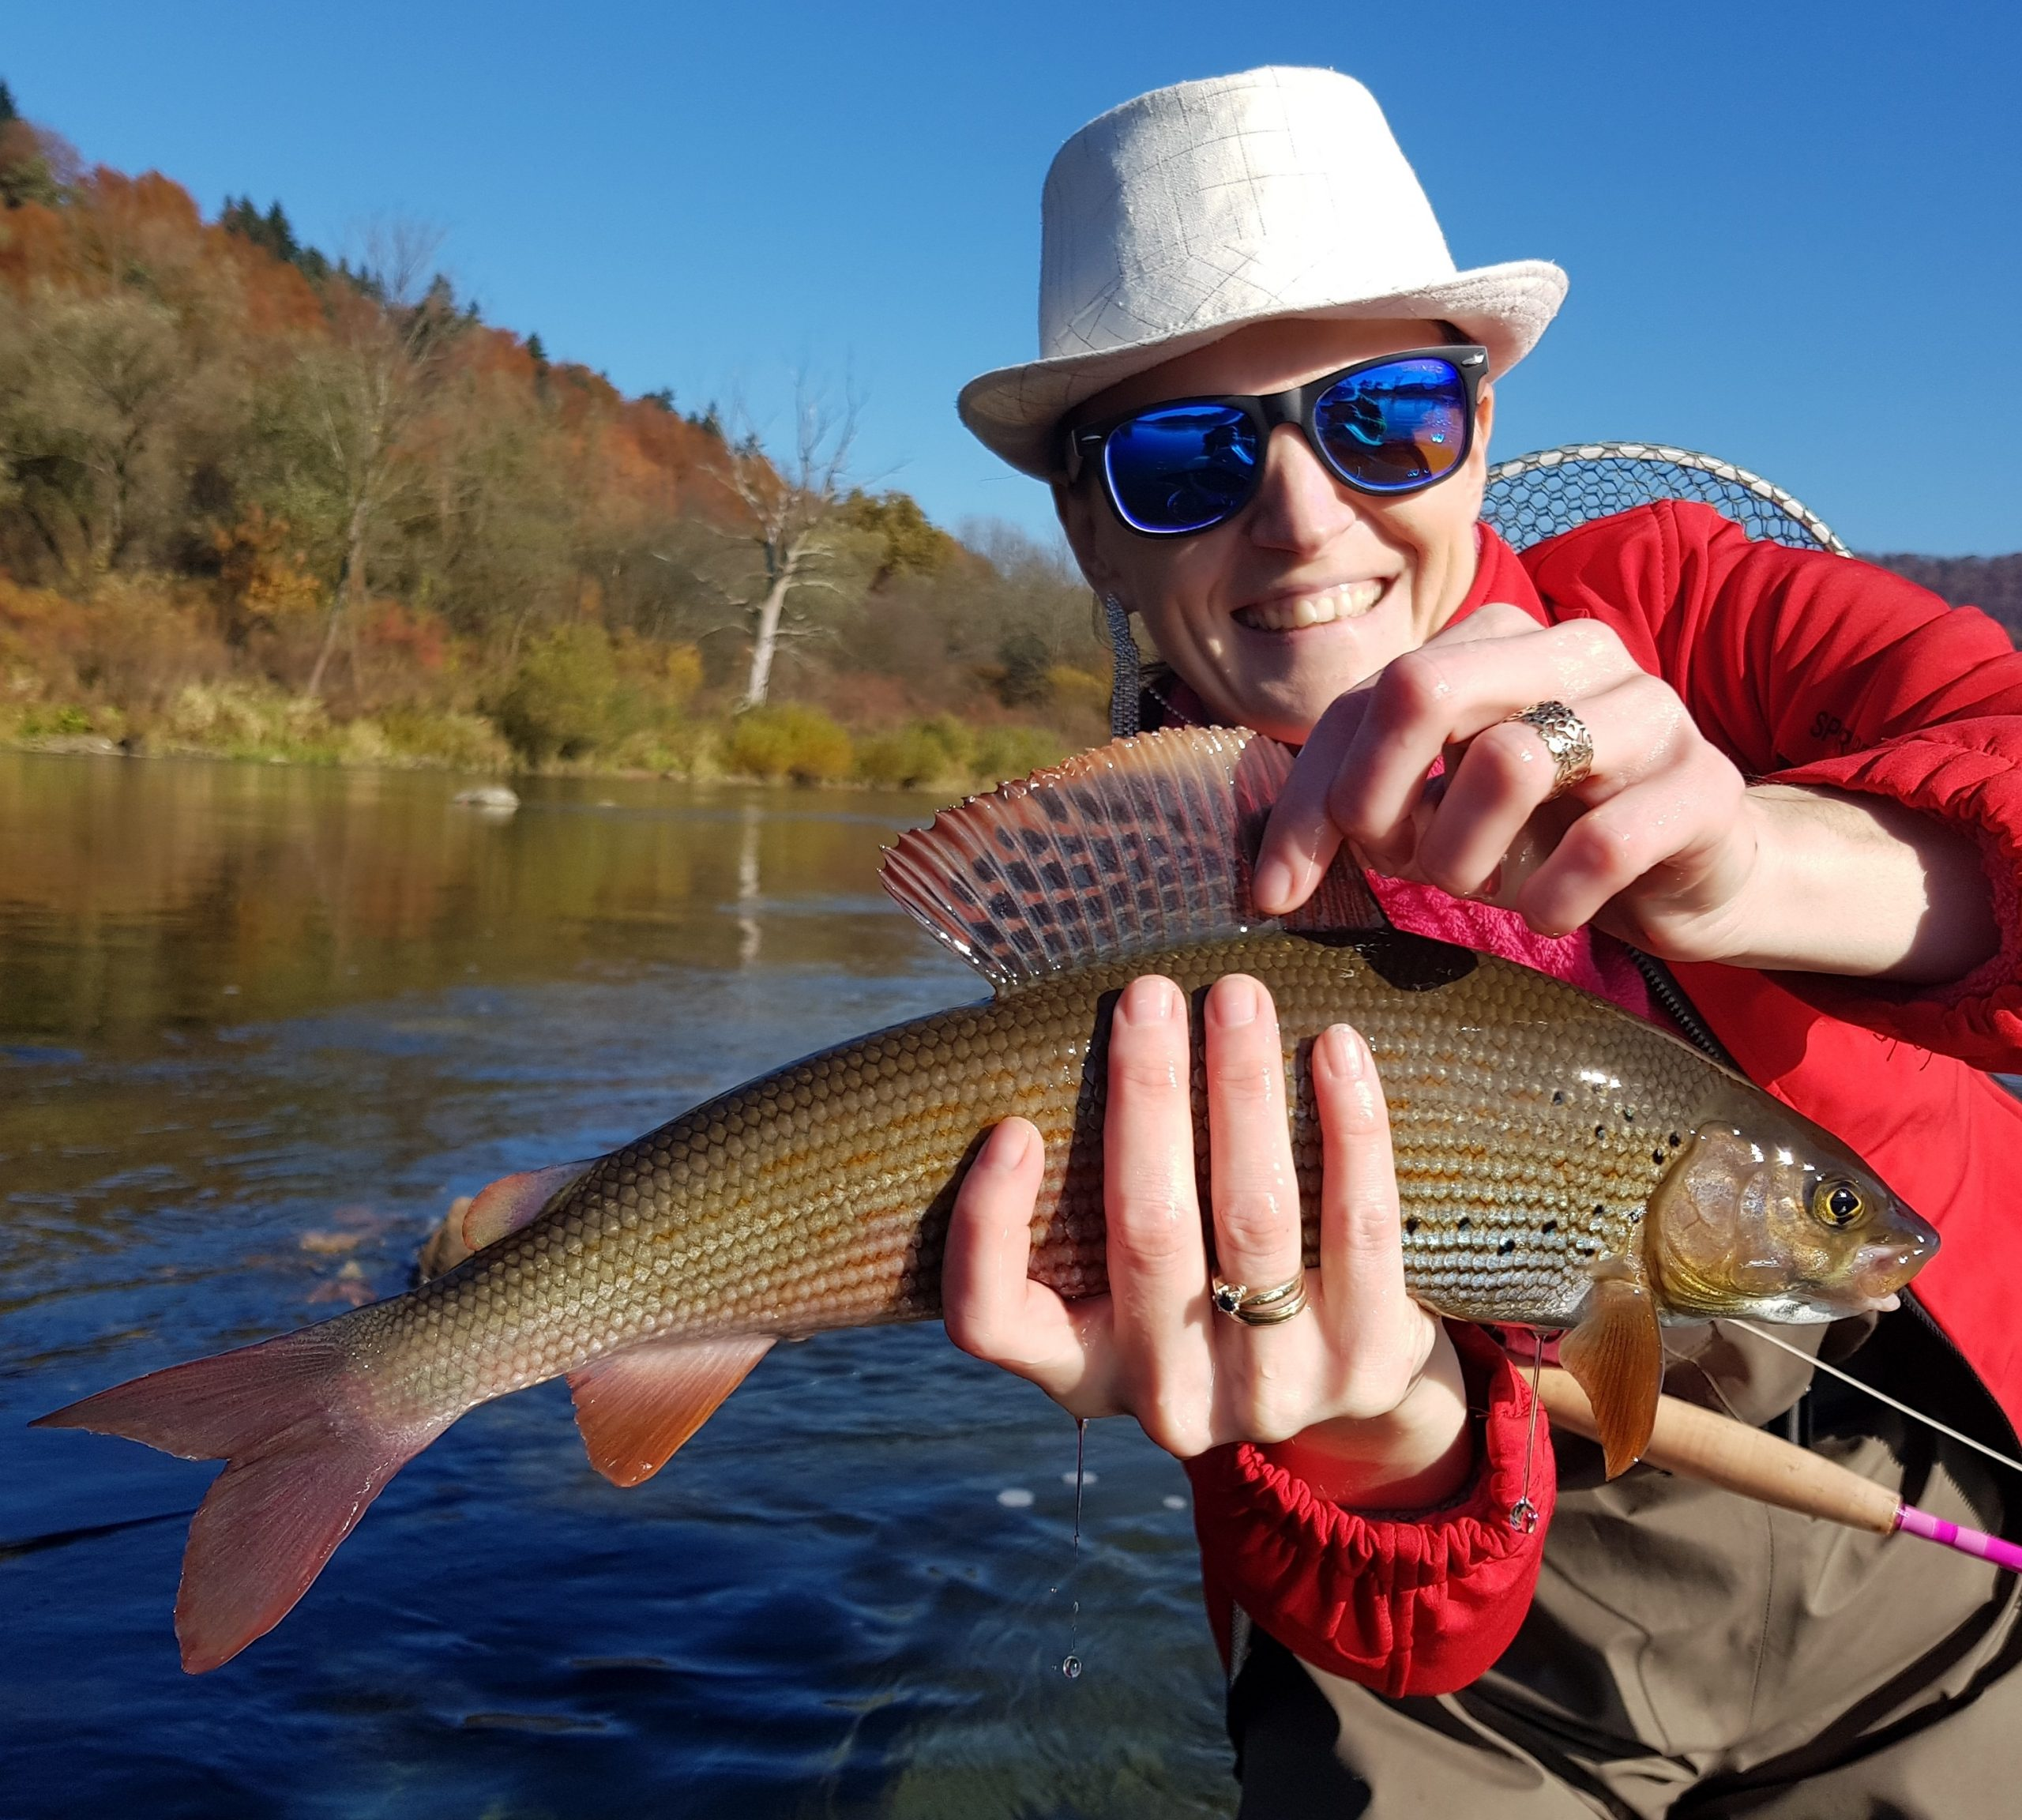 Small dry fly for grayling - east europe fishing trips